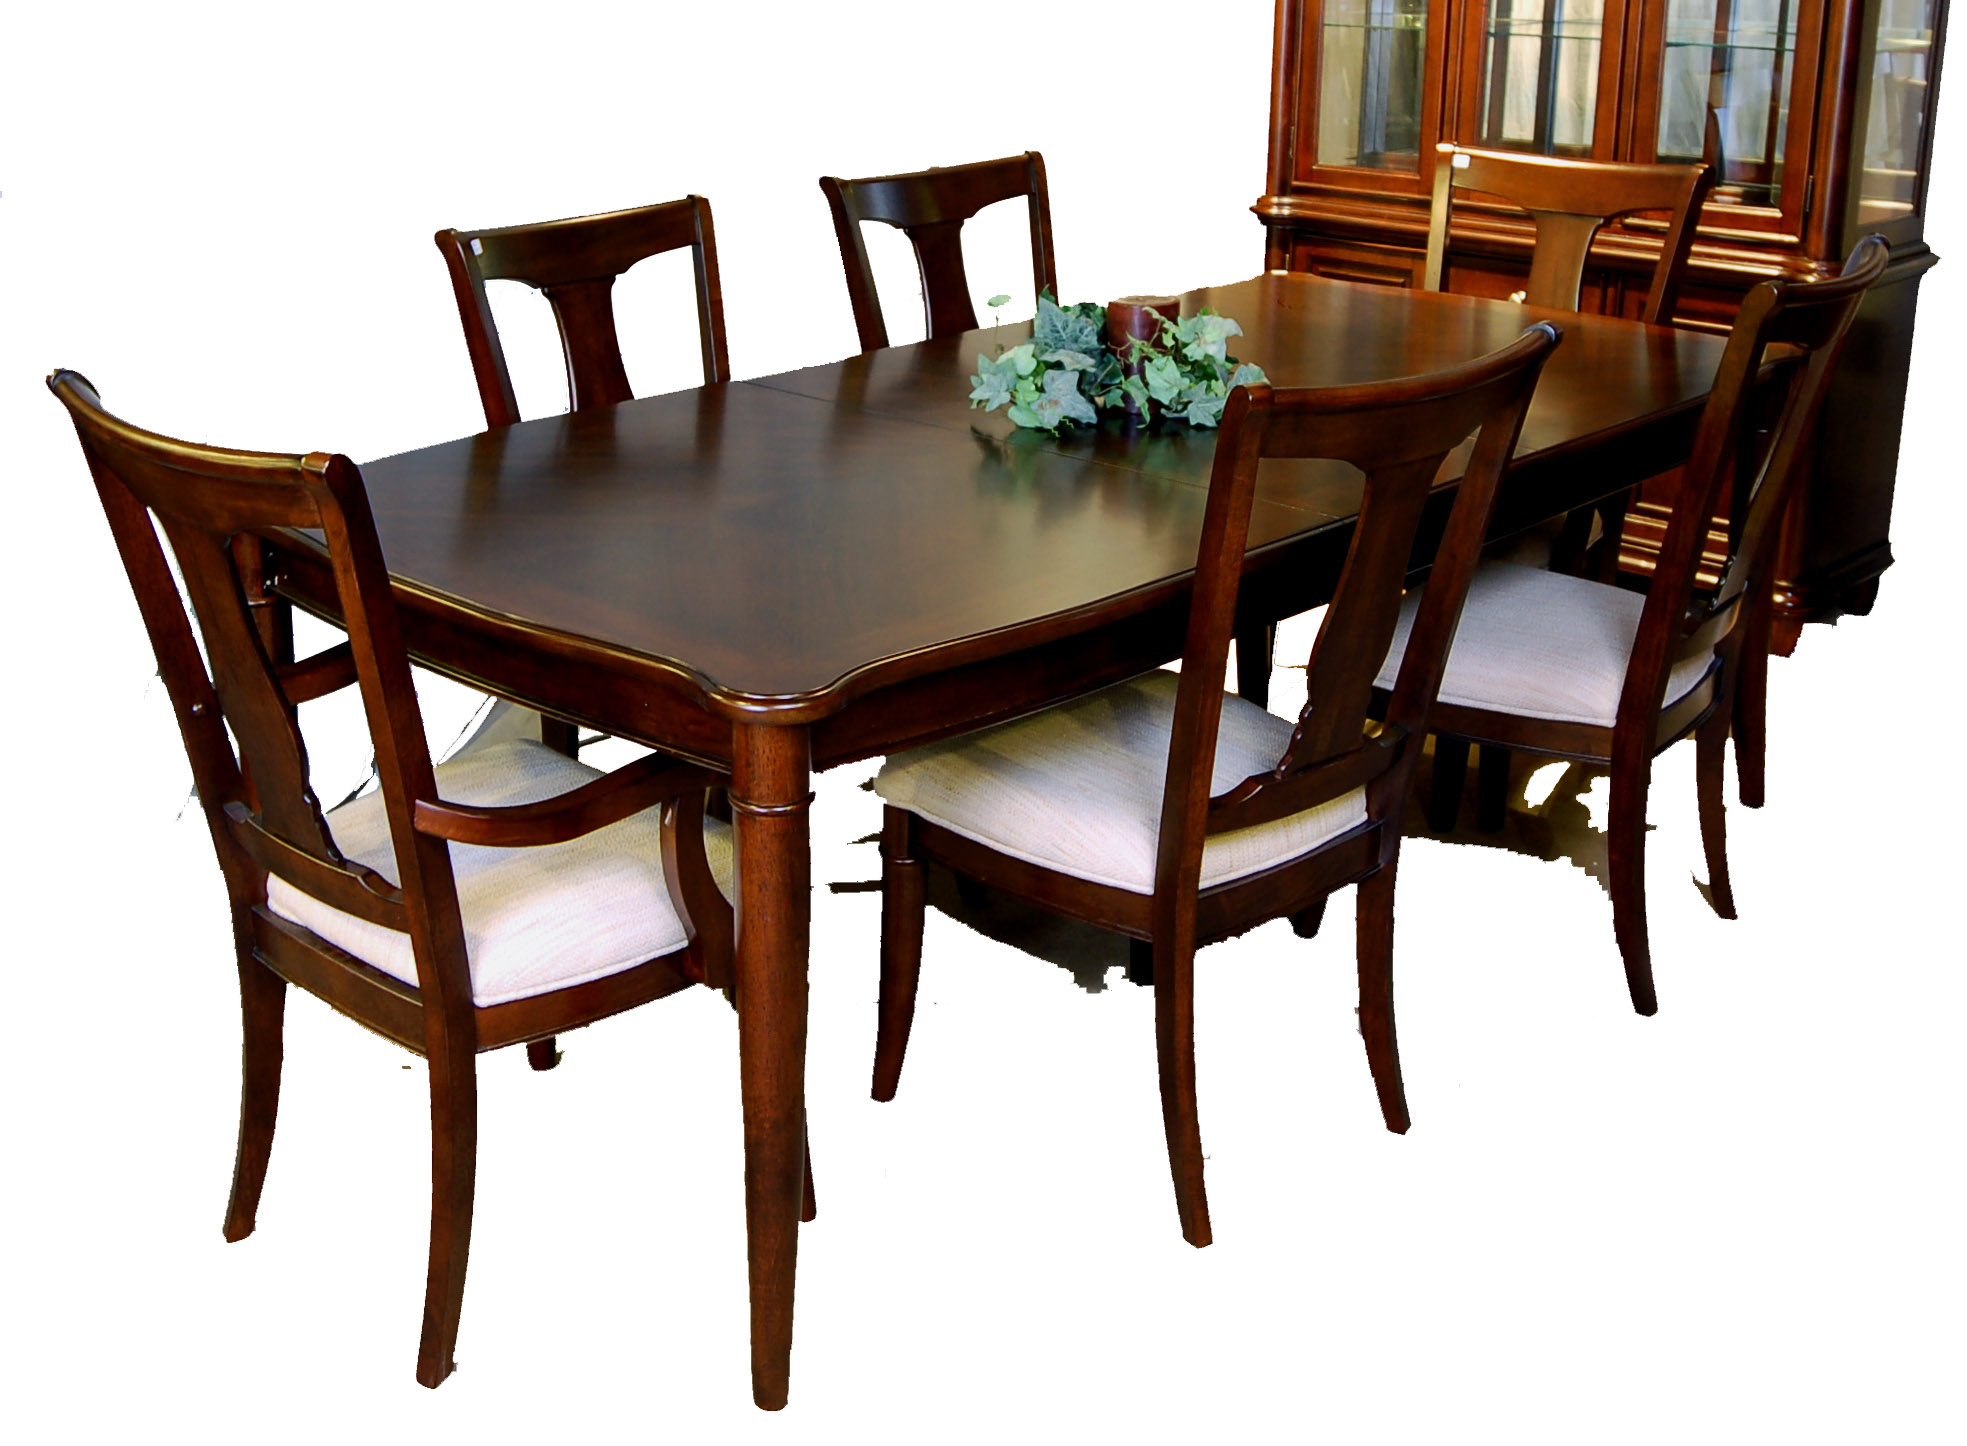 7 piece dining room table and chair set ebay. Black Bedroom Furniture Sets. Home Design Ideas